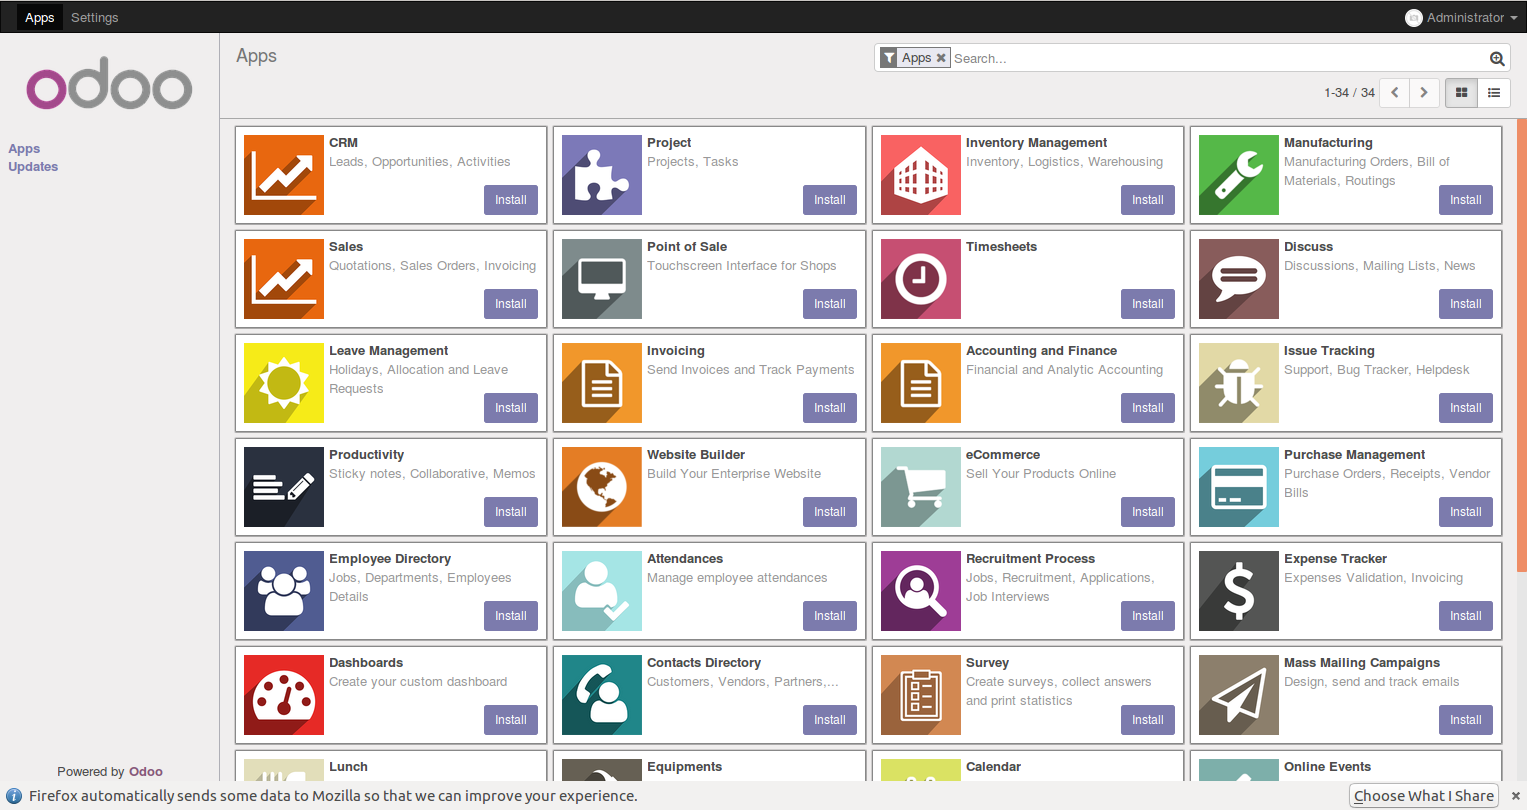 Installing the Sales Management module - Working with Odoo